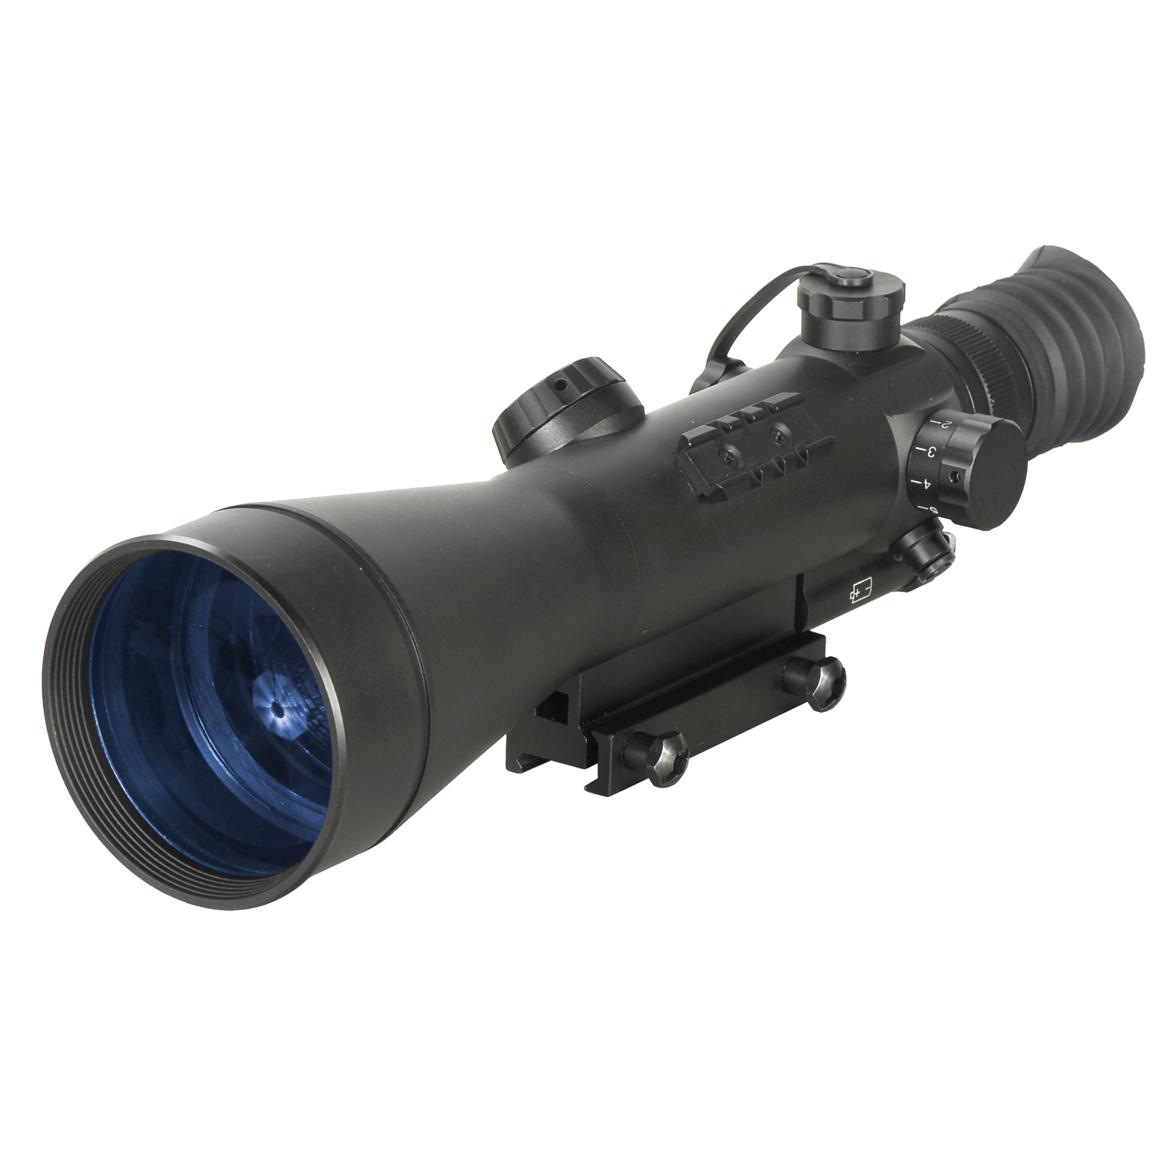 ATN® Night Arrow 6-WPT Night Vision Weapon Sight